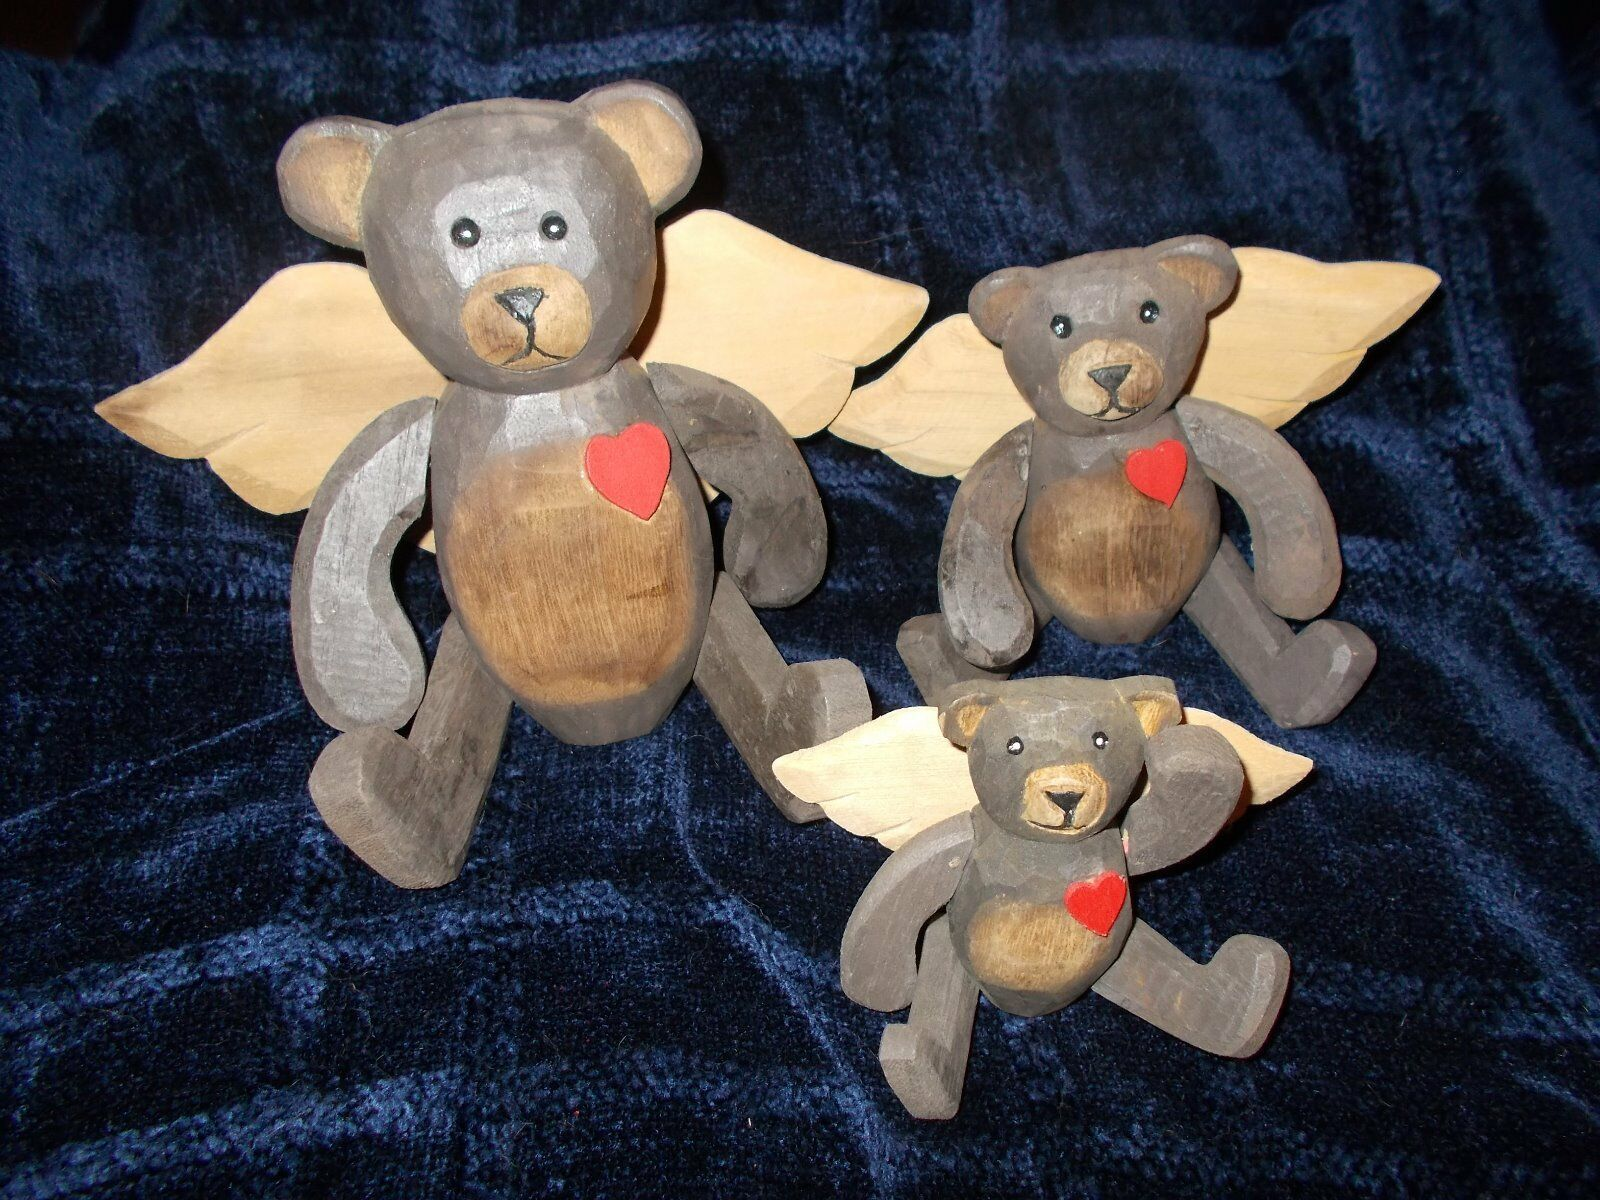 3 WOOD TEDDY BEAR ANGEL W/ WINGS RUSTIC,COUNTRY,MOVABLE ARMS AND LEGS